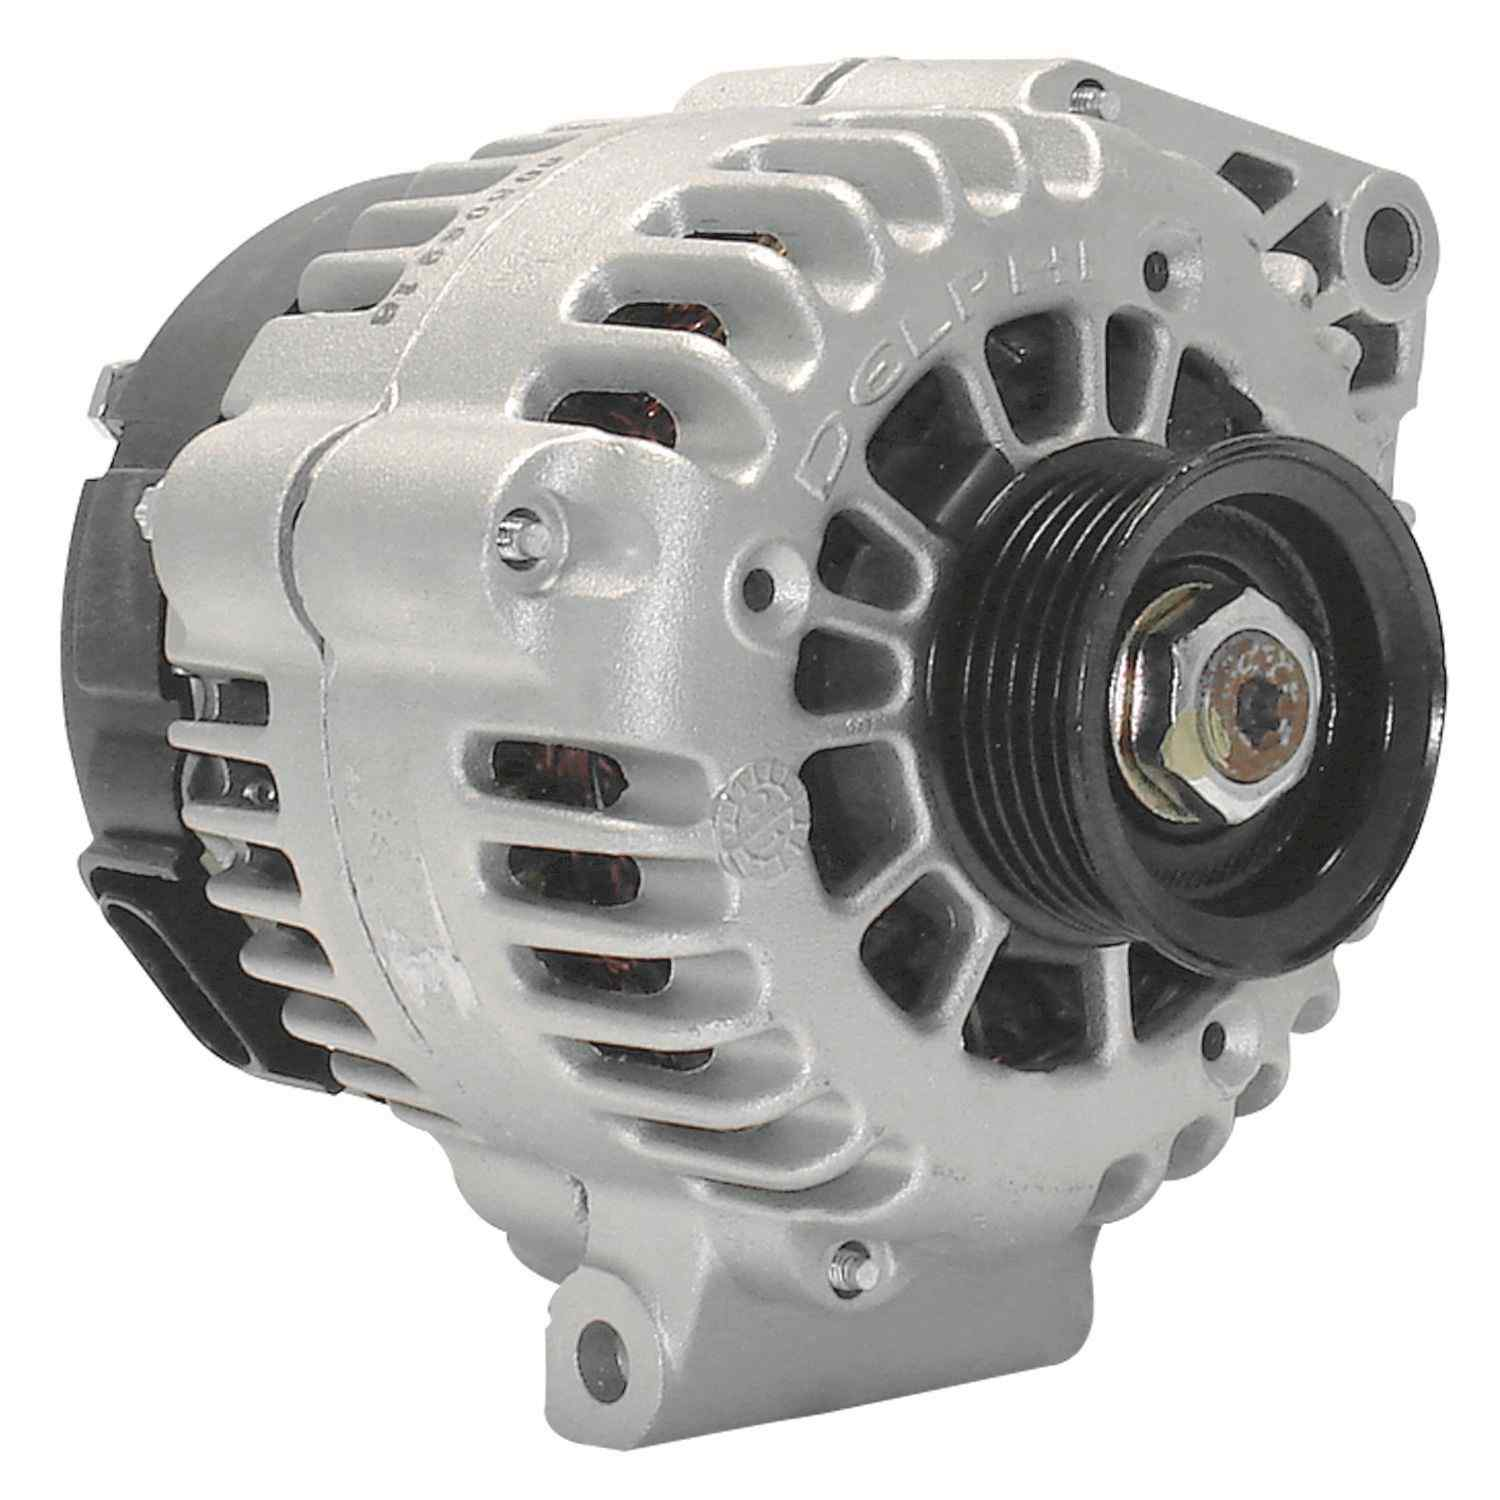 ACDELCO GOLD/PROFESSIONAL - Reman Alternator - DCC 334-1834A